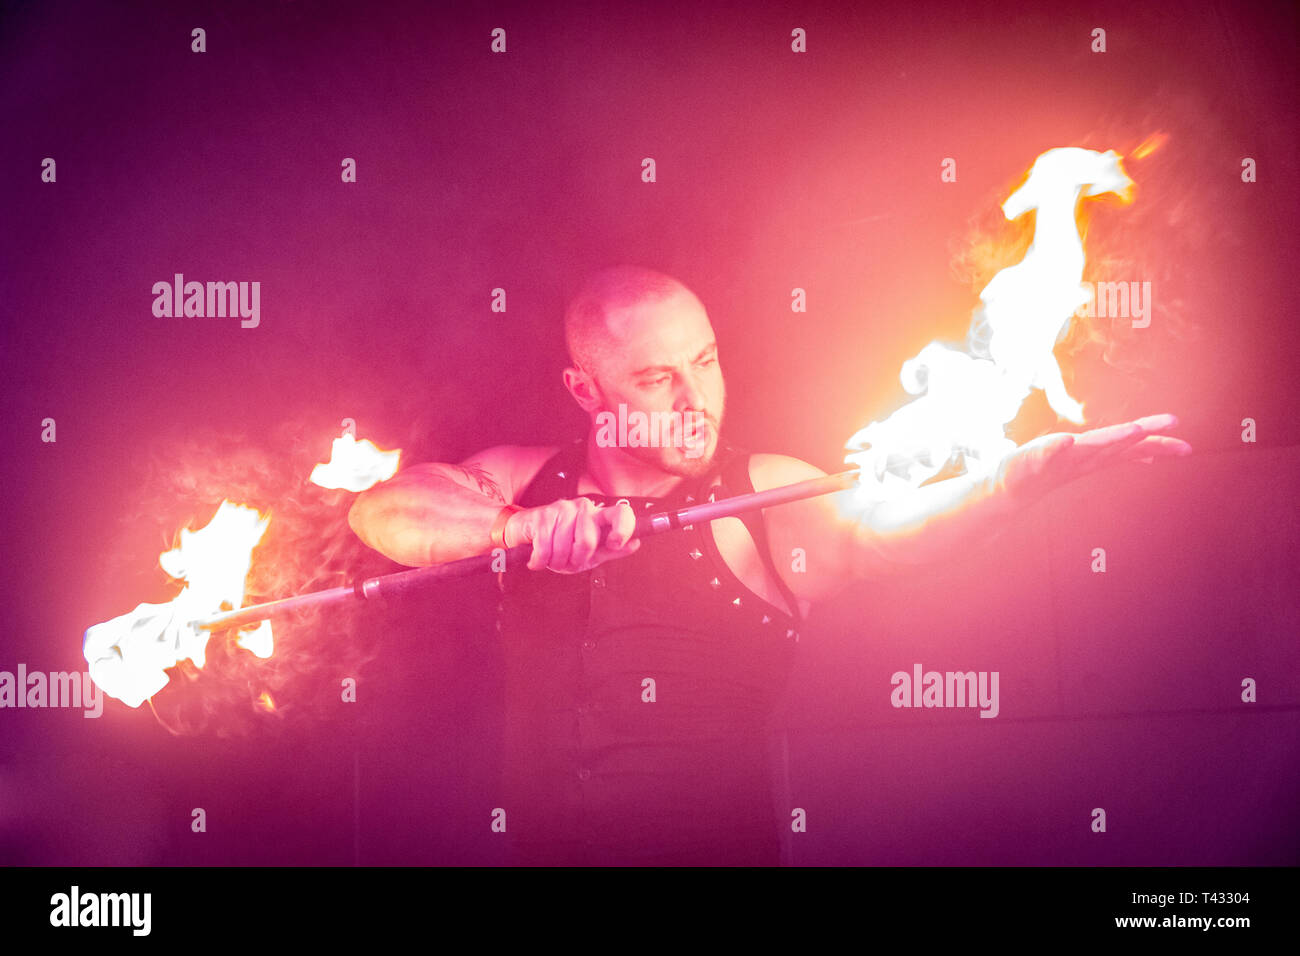 Performer playing with fire - Stock Image